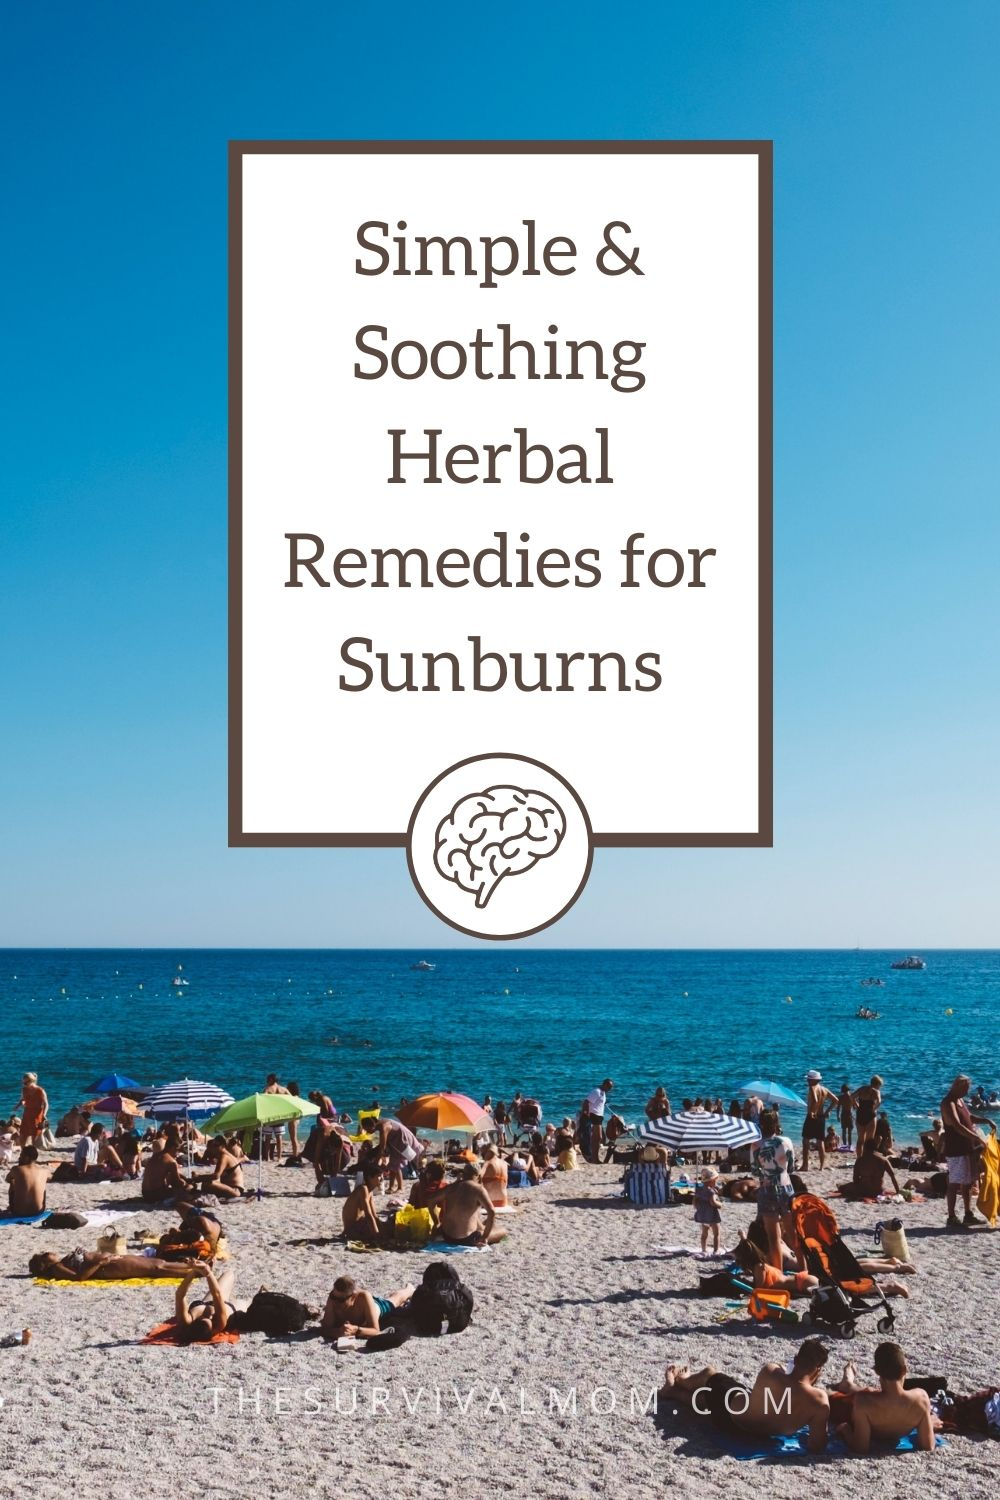 Simple and Soothing Herbal Remedies for Sunburns via The Survival Mom